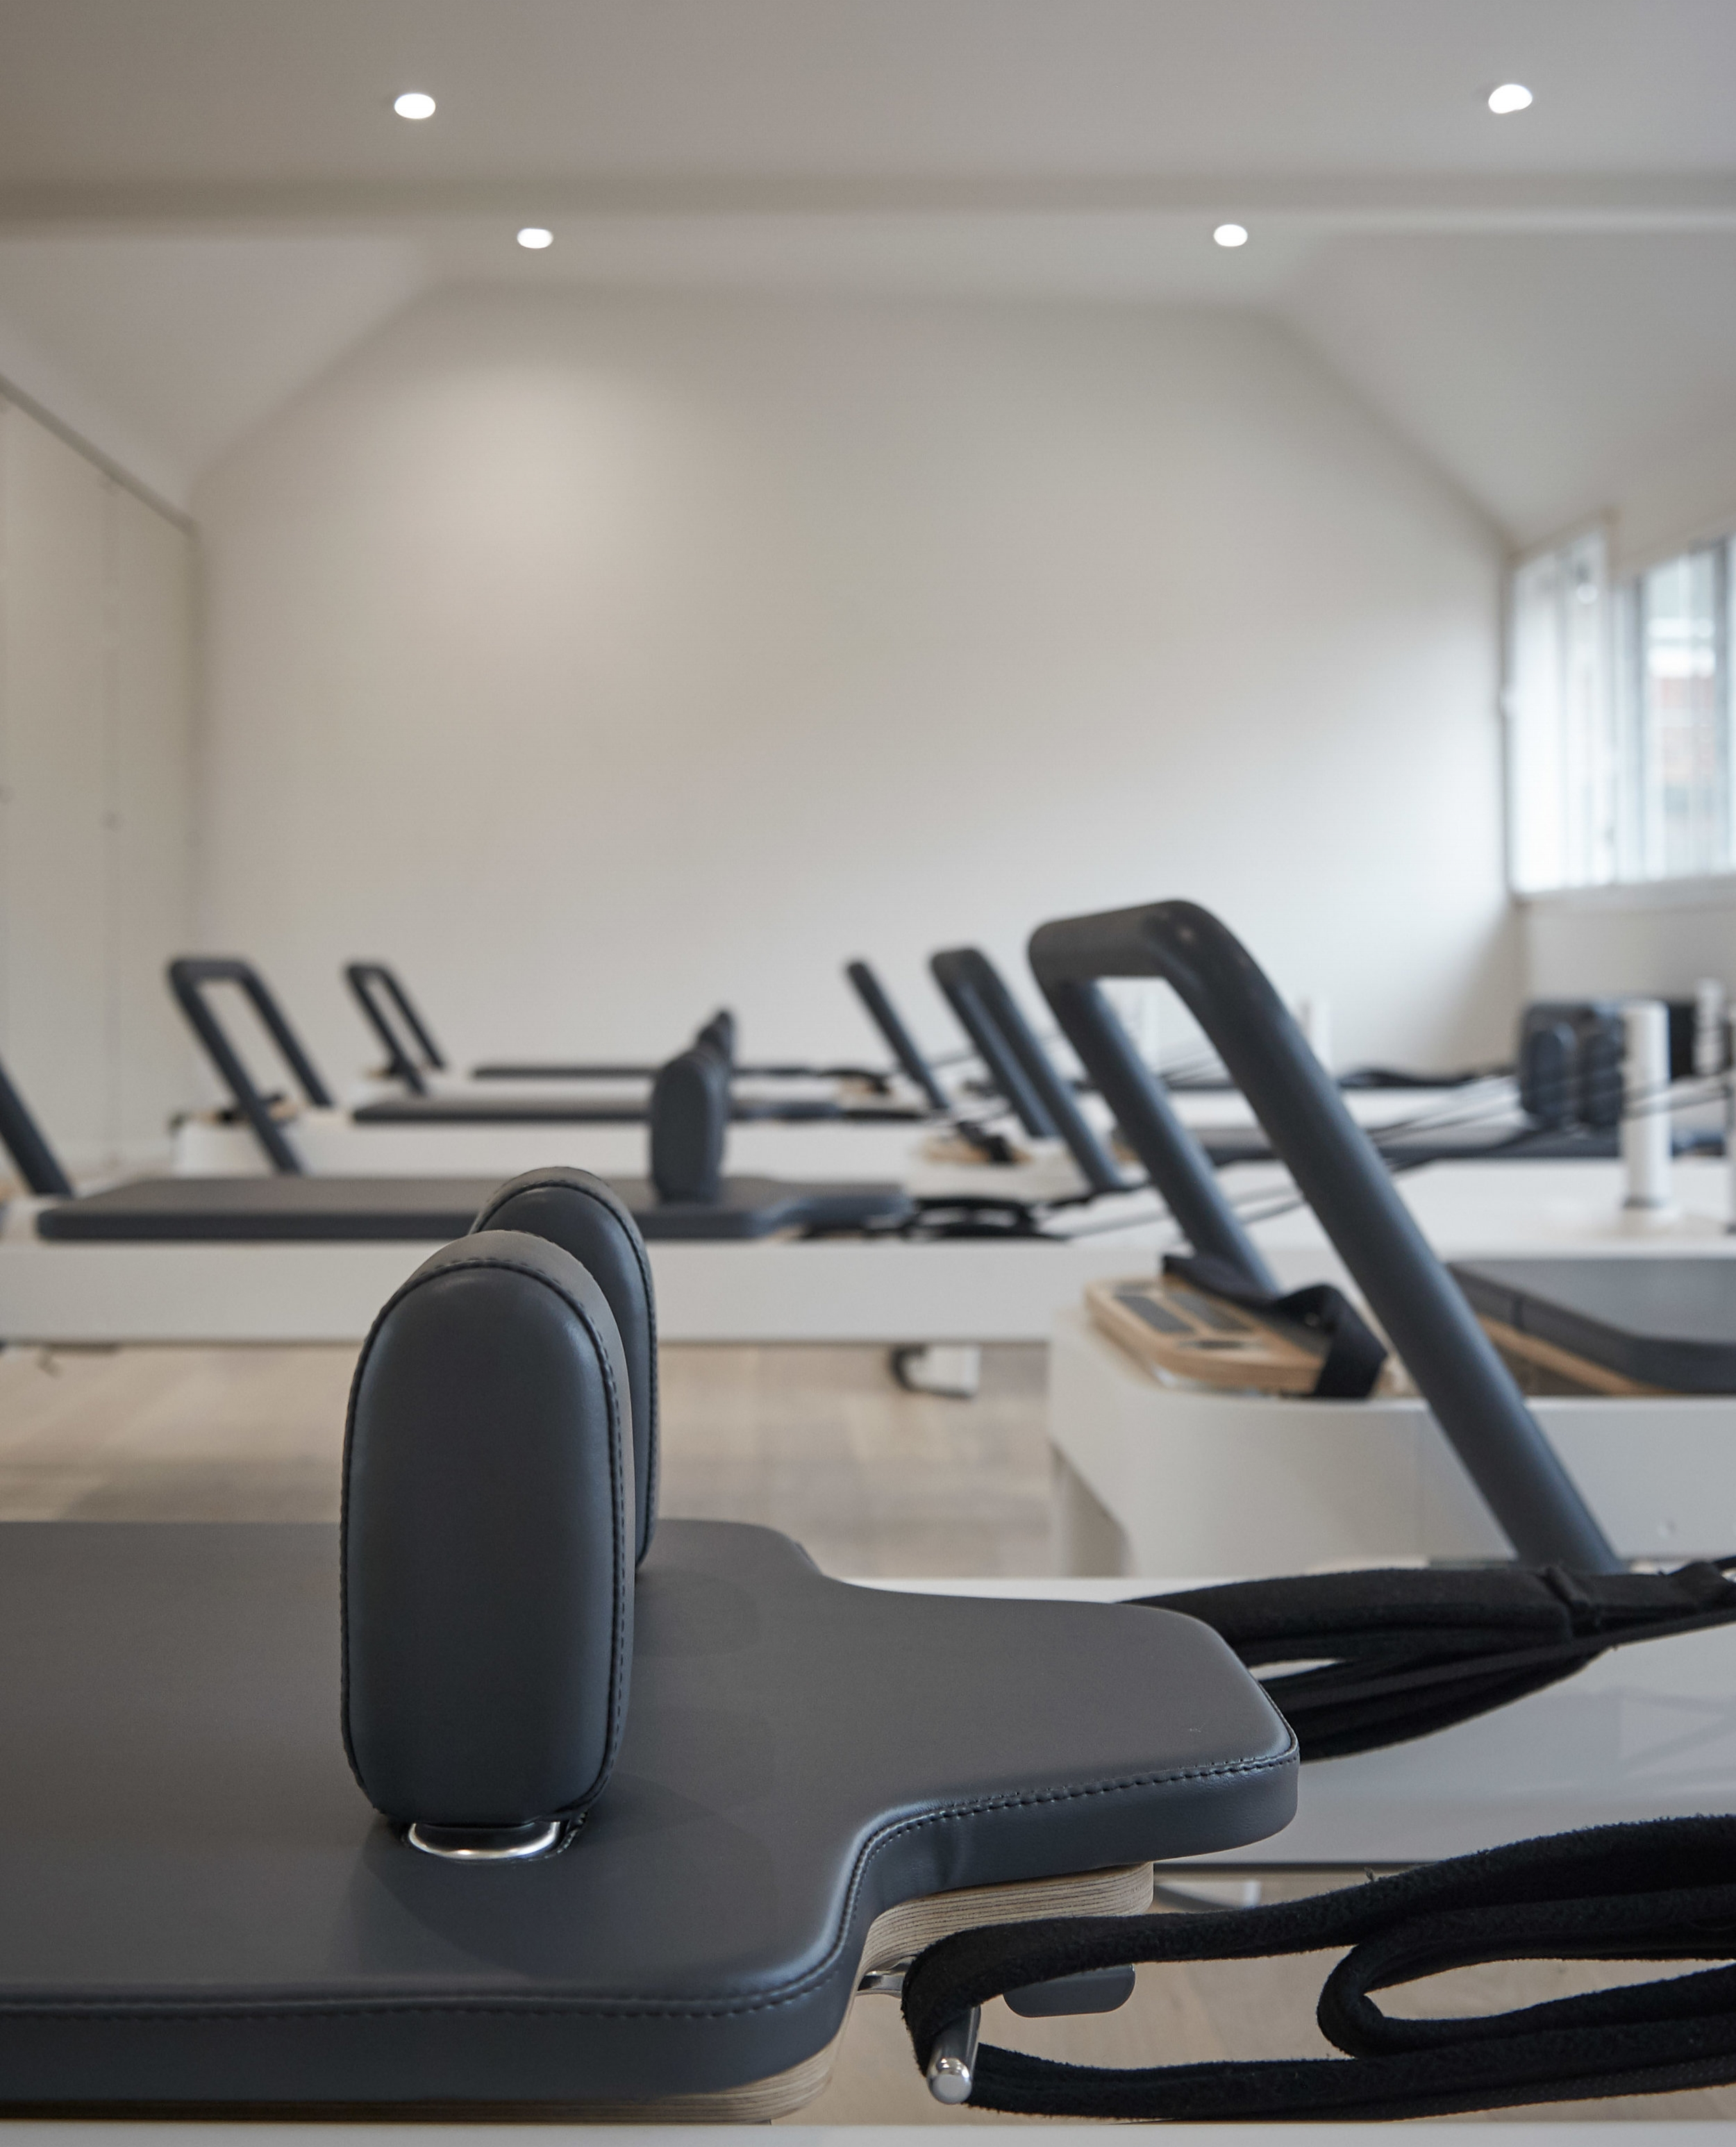 Introduction to reformer... - Attend one of our Introductory Reformer Workshops and find out all you need to know about reformer classes here at Mycore Pilates.🖤 SATURDAY 7th SEPTEMBER 11.30am - 12.30pm with Imani